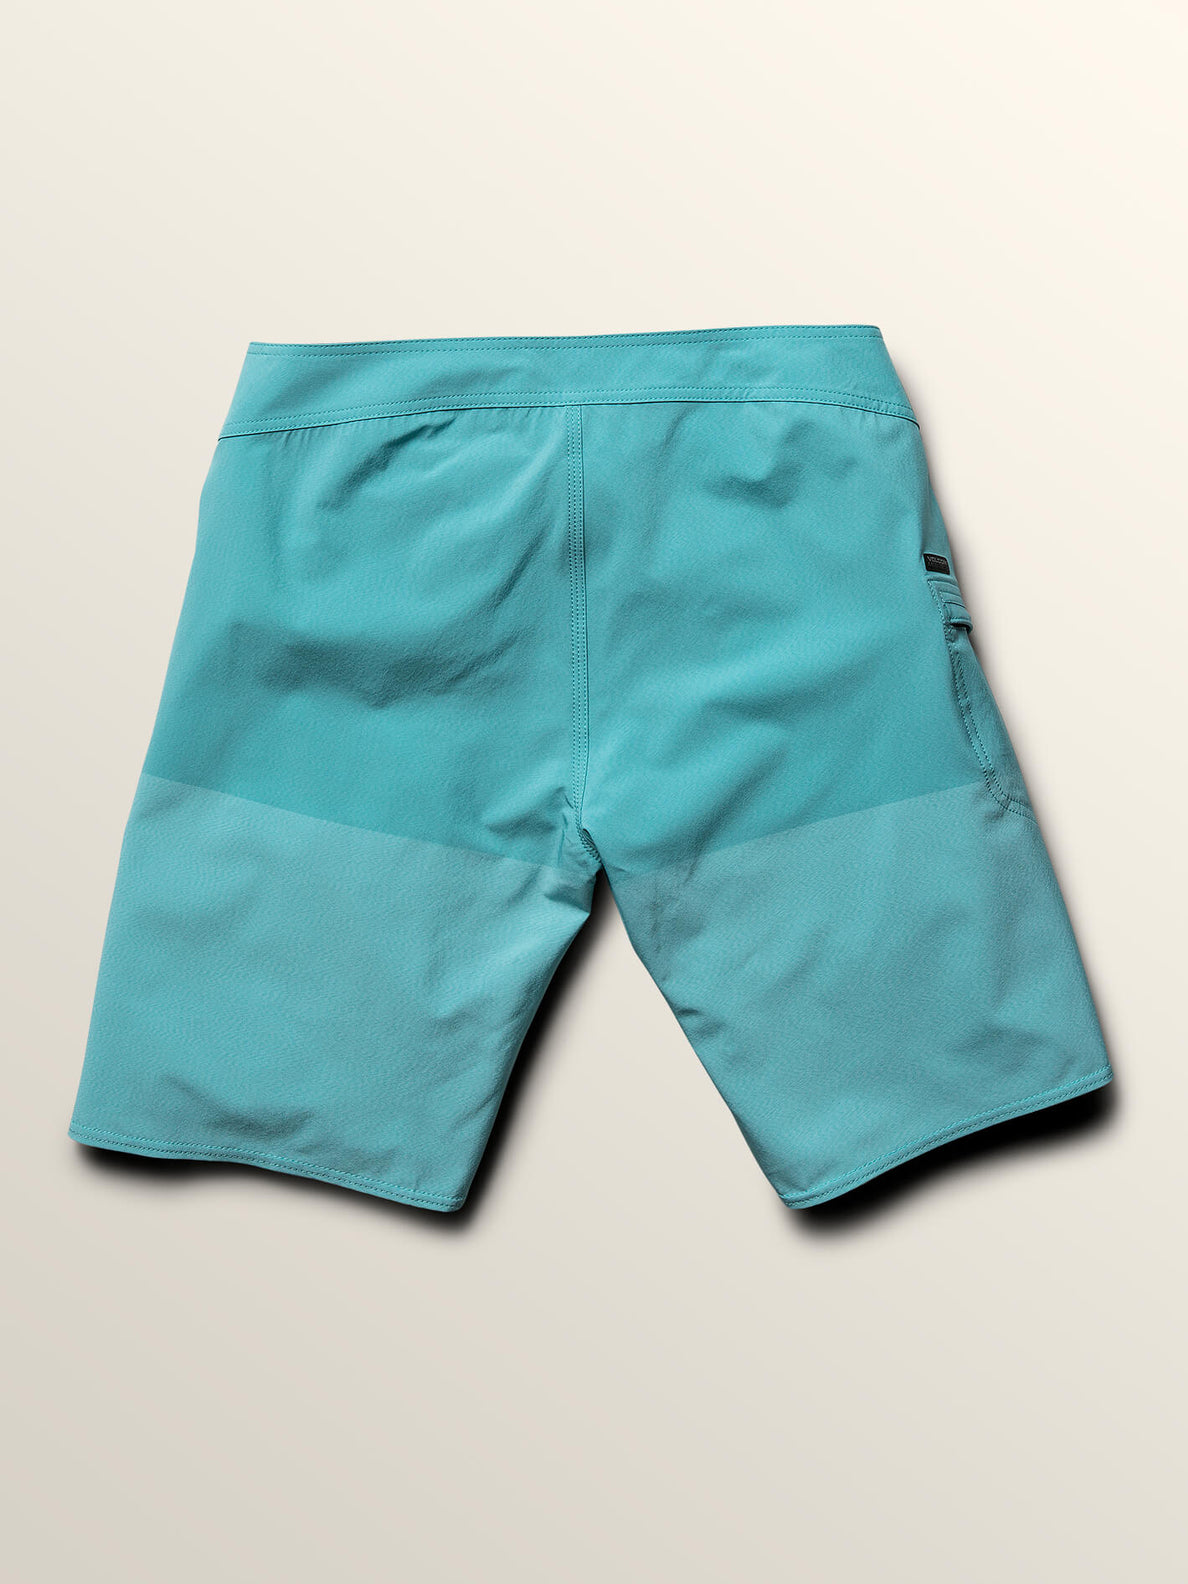 Lido Heather Mod Boardshorts In Neon Blue, Fourth Alternate View